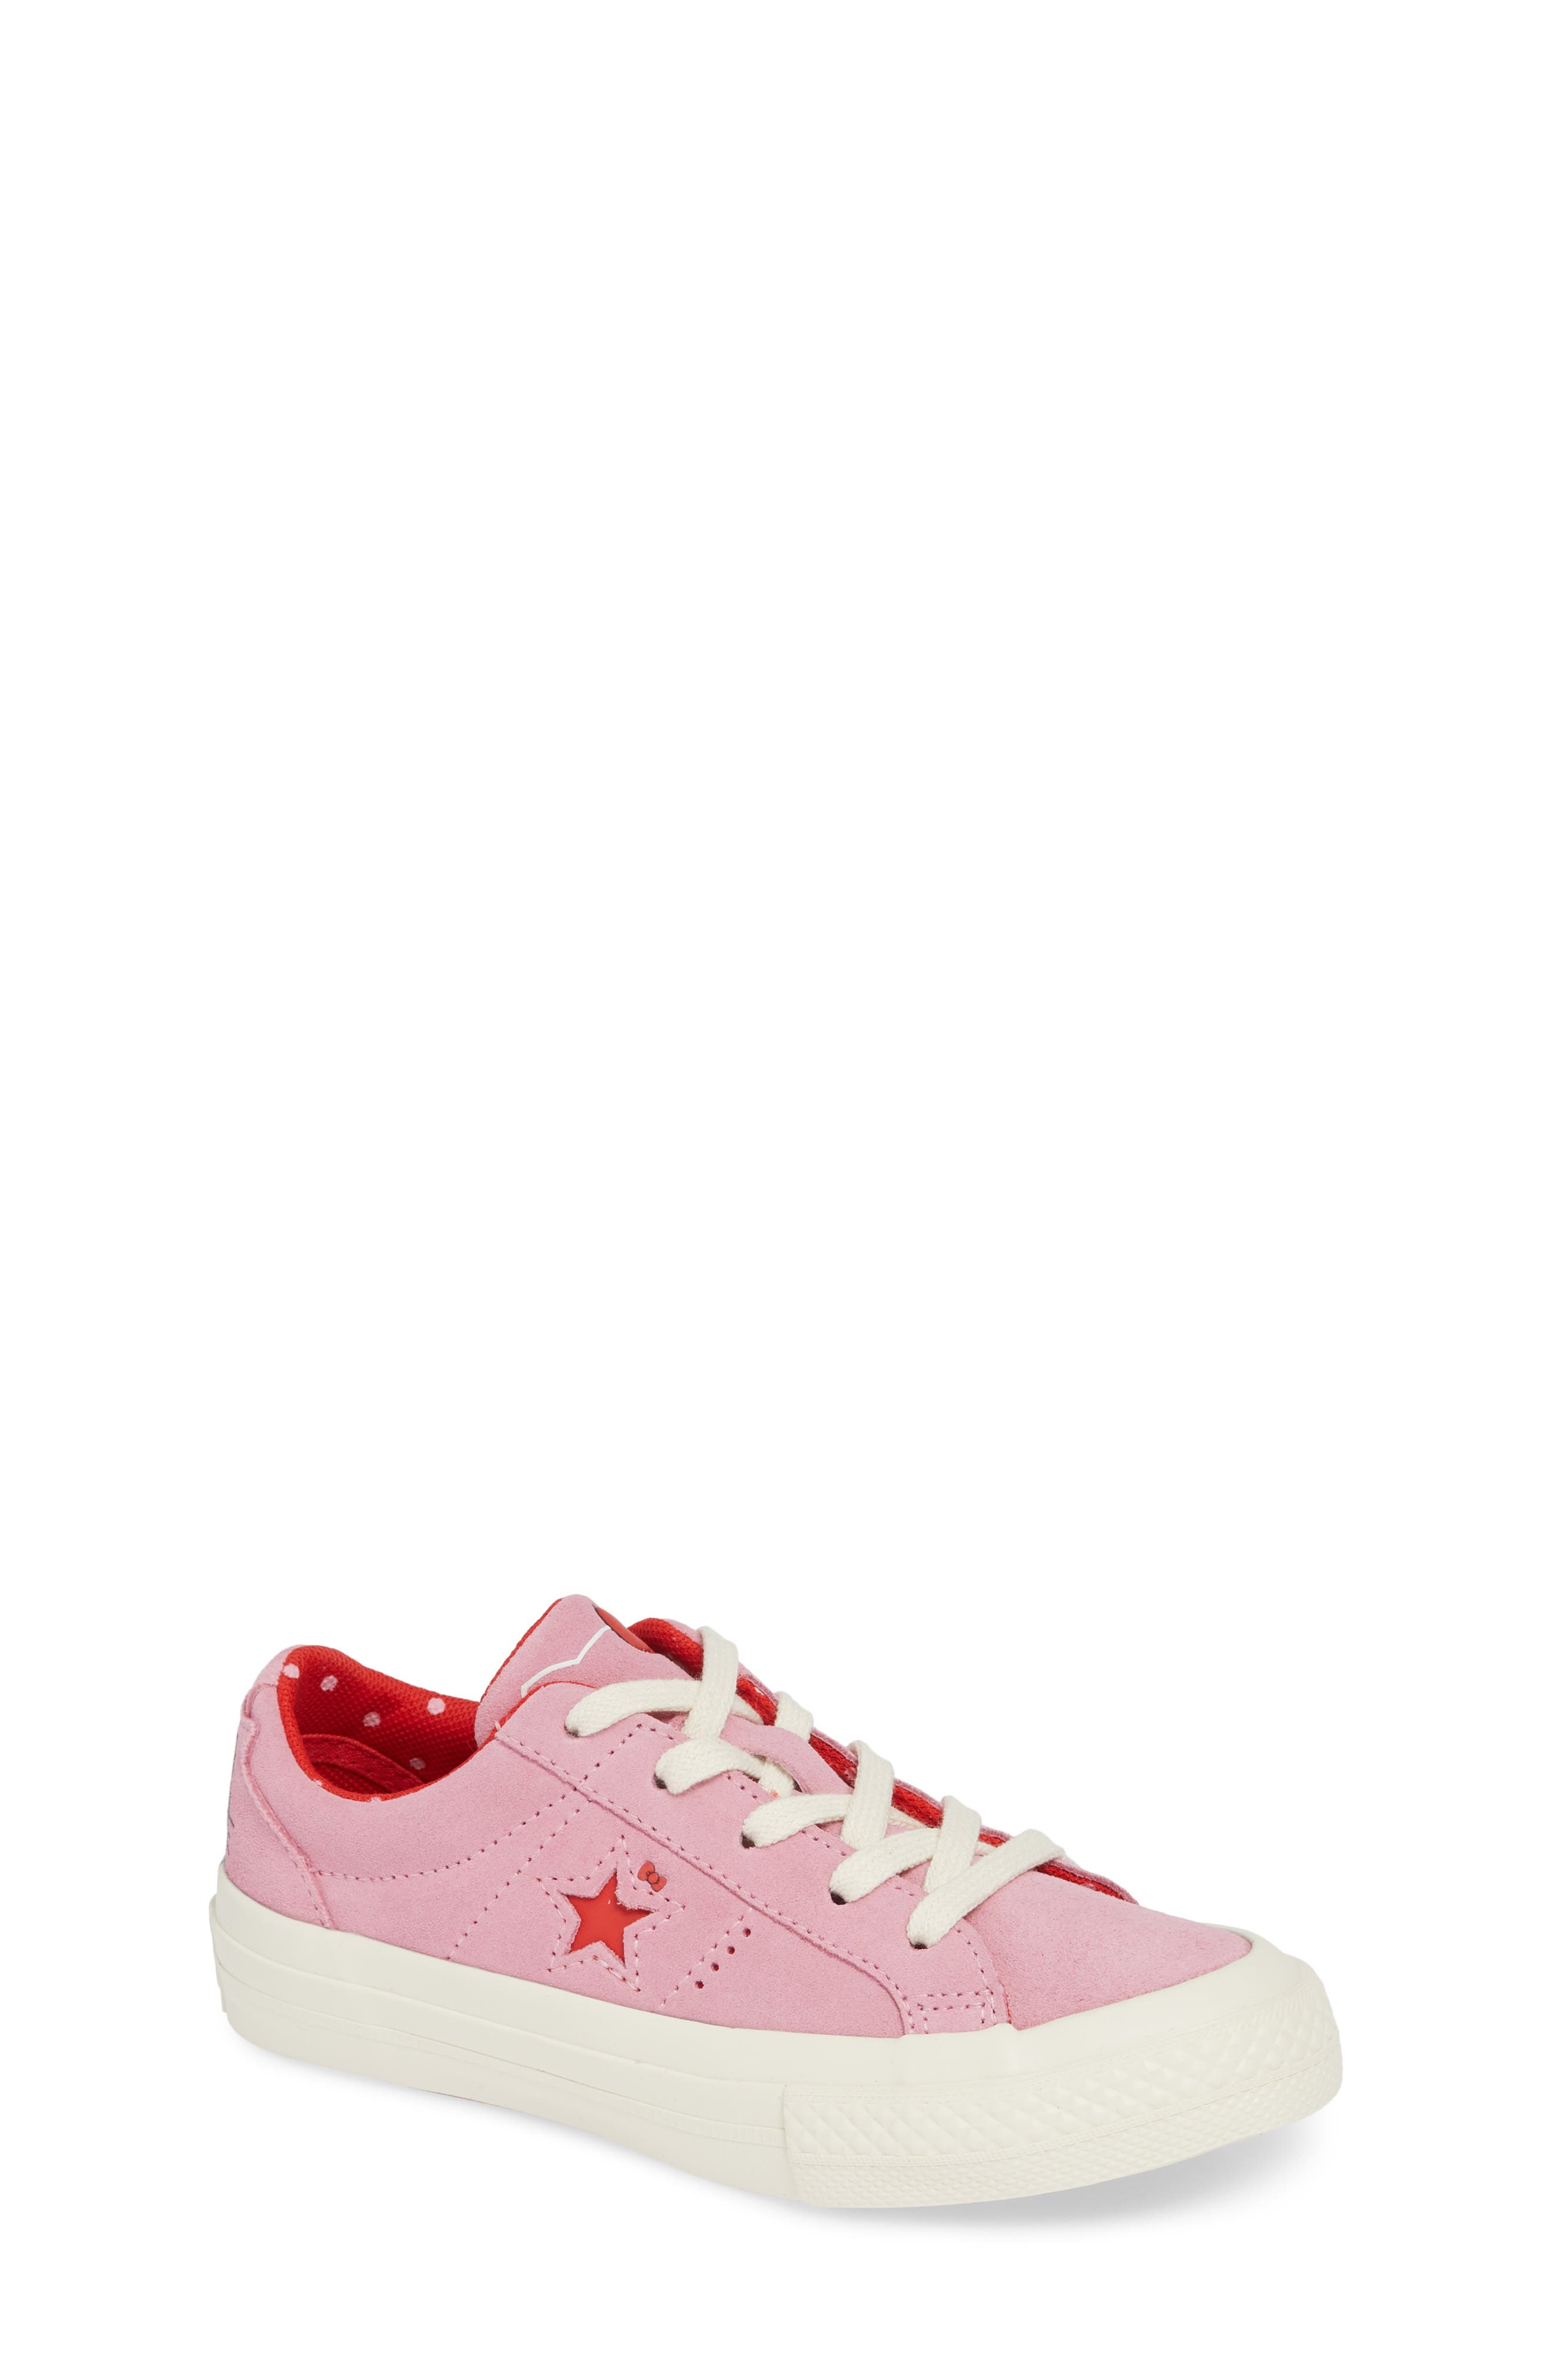 One Star Hello Kitty<sup>®</sup> Sneaker,                             Main thumbnail 1, color,                             PINK PRISM